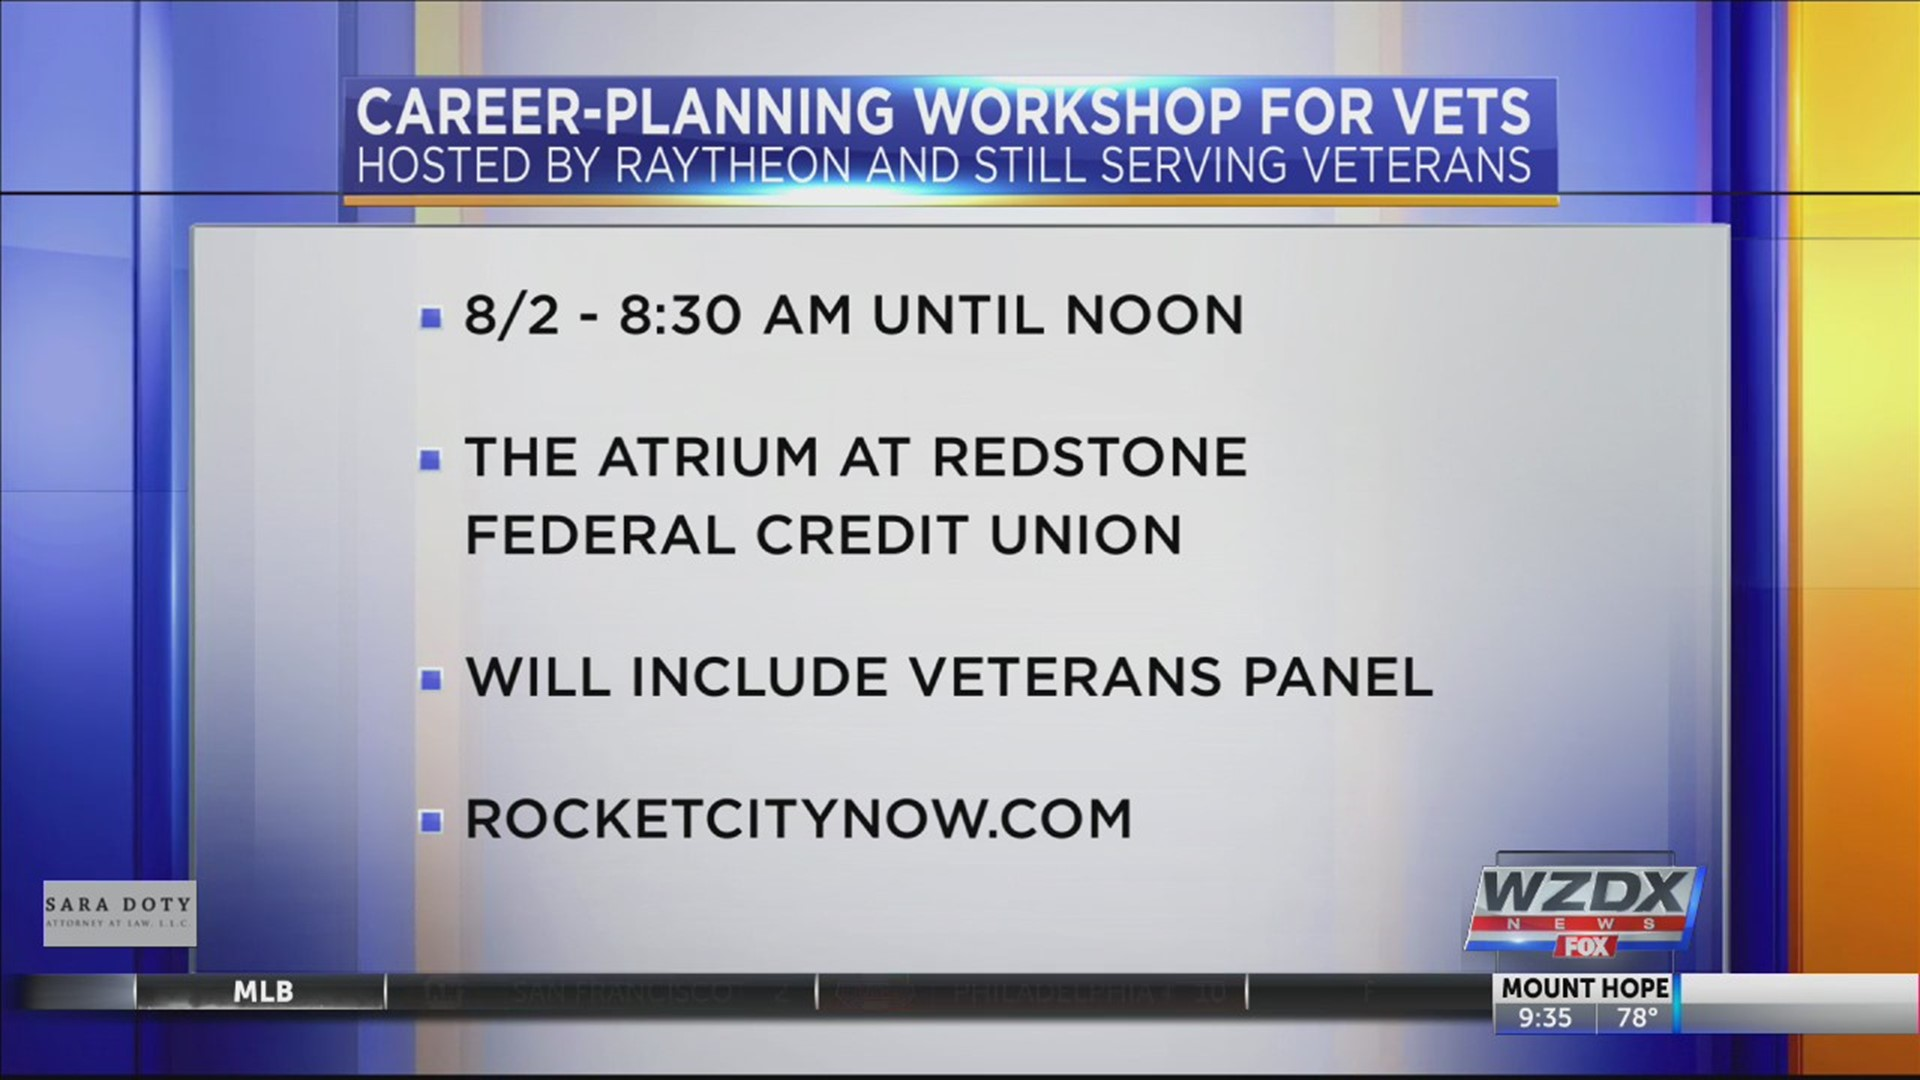 Career Planning Event For Veterans Rocketcitynow Com